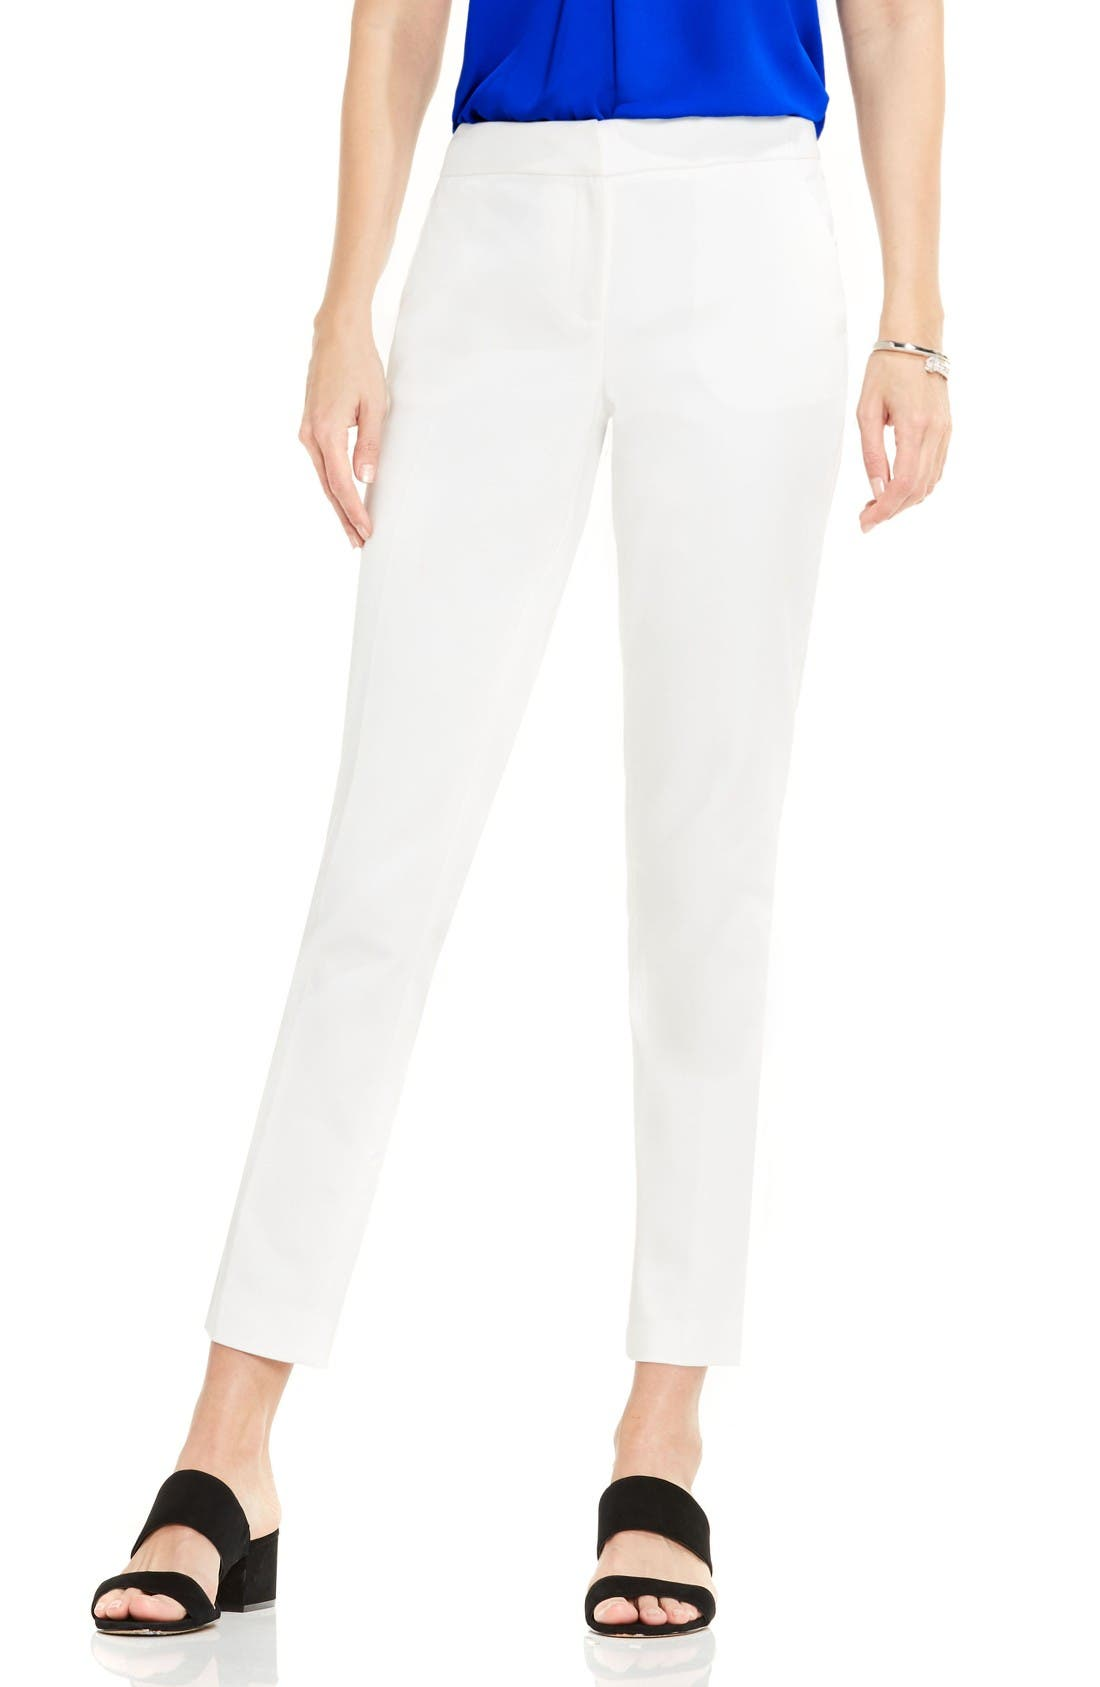 Vince Camuto Double Weave Cotton Blend Ankle Pants (Regular & Petite)